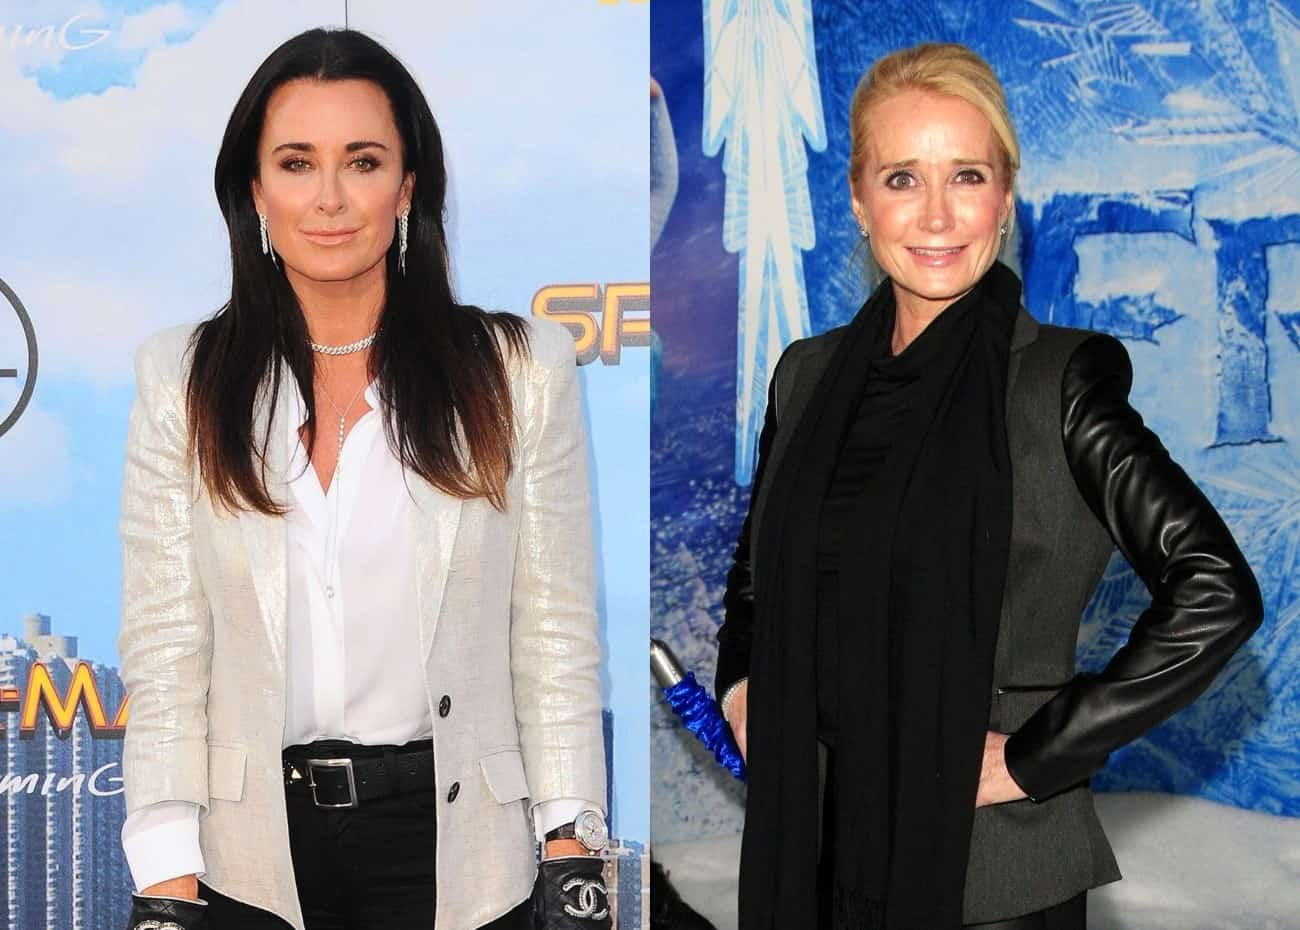 REPORT: RHOBH Star Kyle Richards Wants Sister Kim Richards Back in Rehab Amid Sobriety and Mental Health Concerns as Kim Remains Silent on Social Media